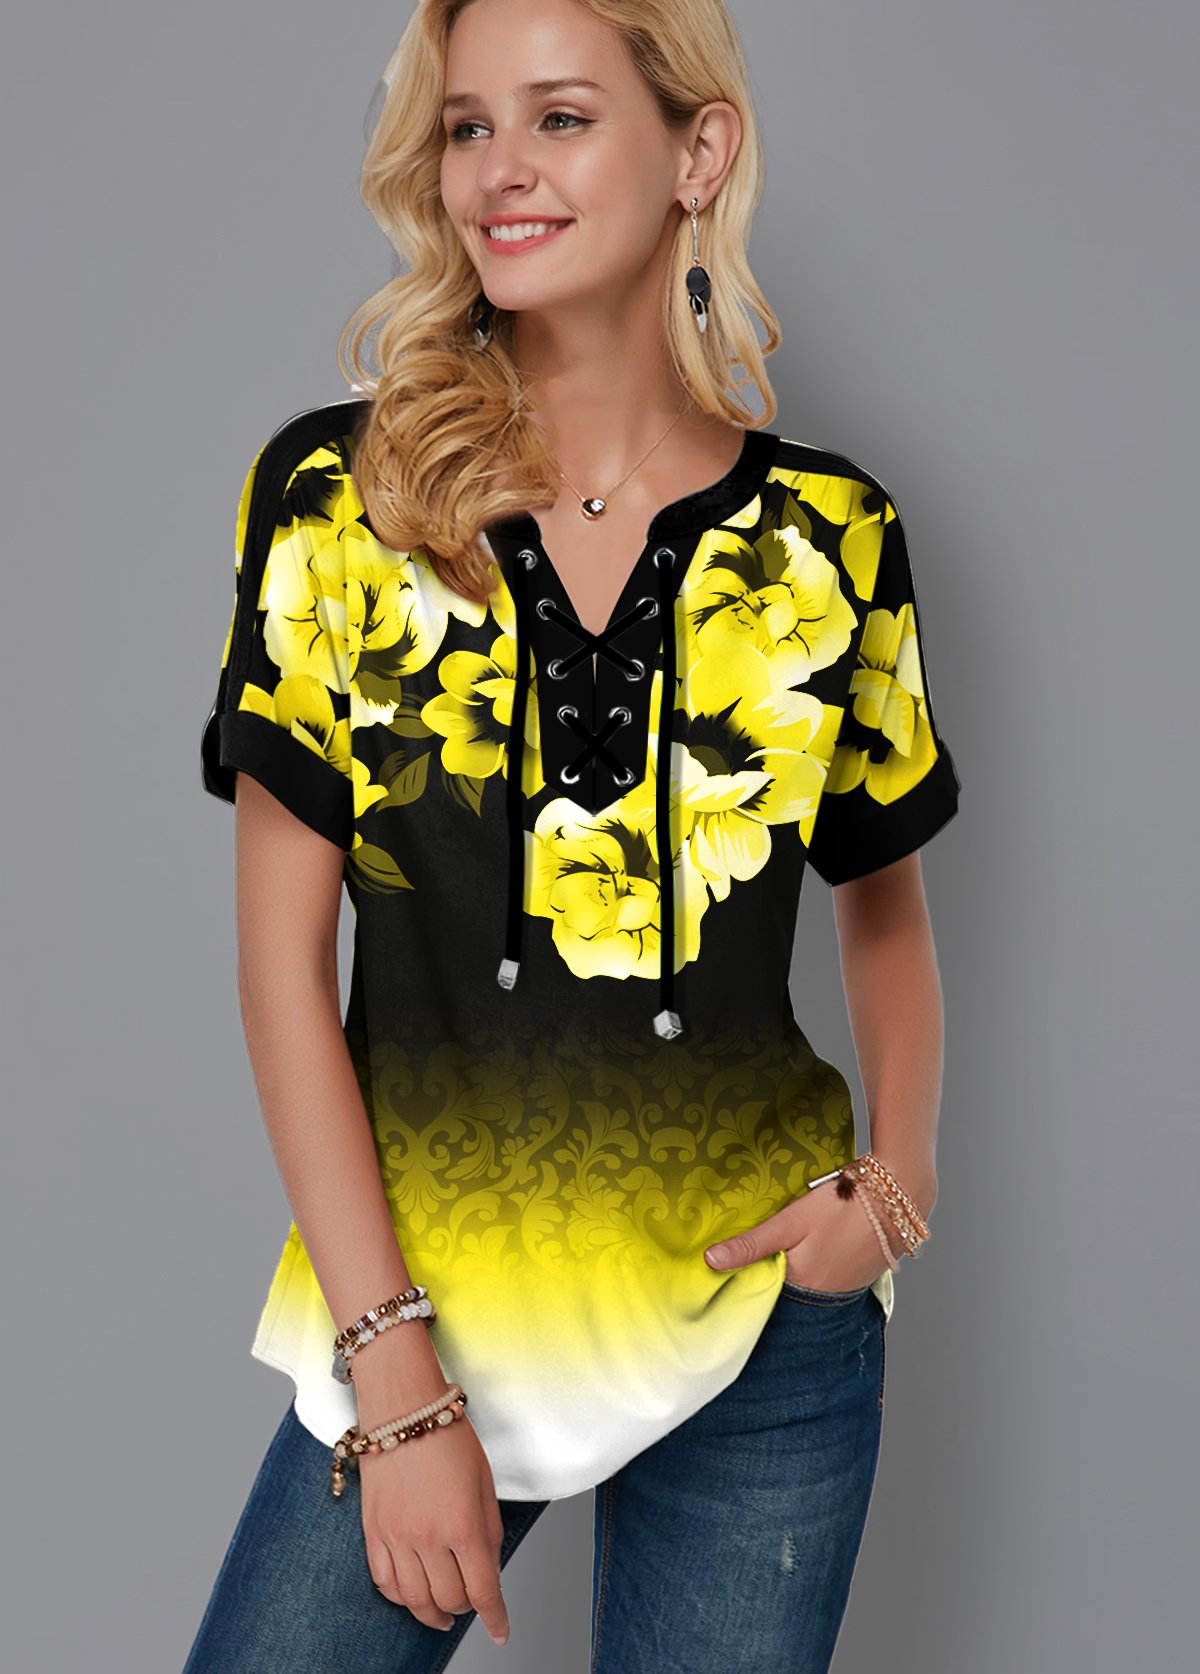 ROTITA Lace Up Floral Print Gradient Blouse